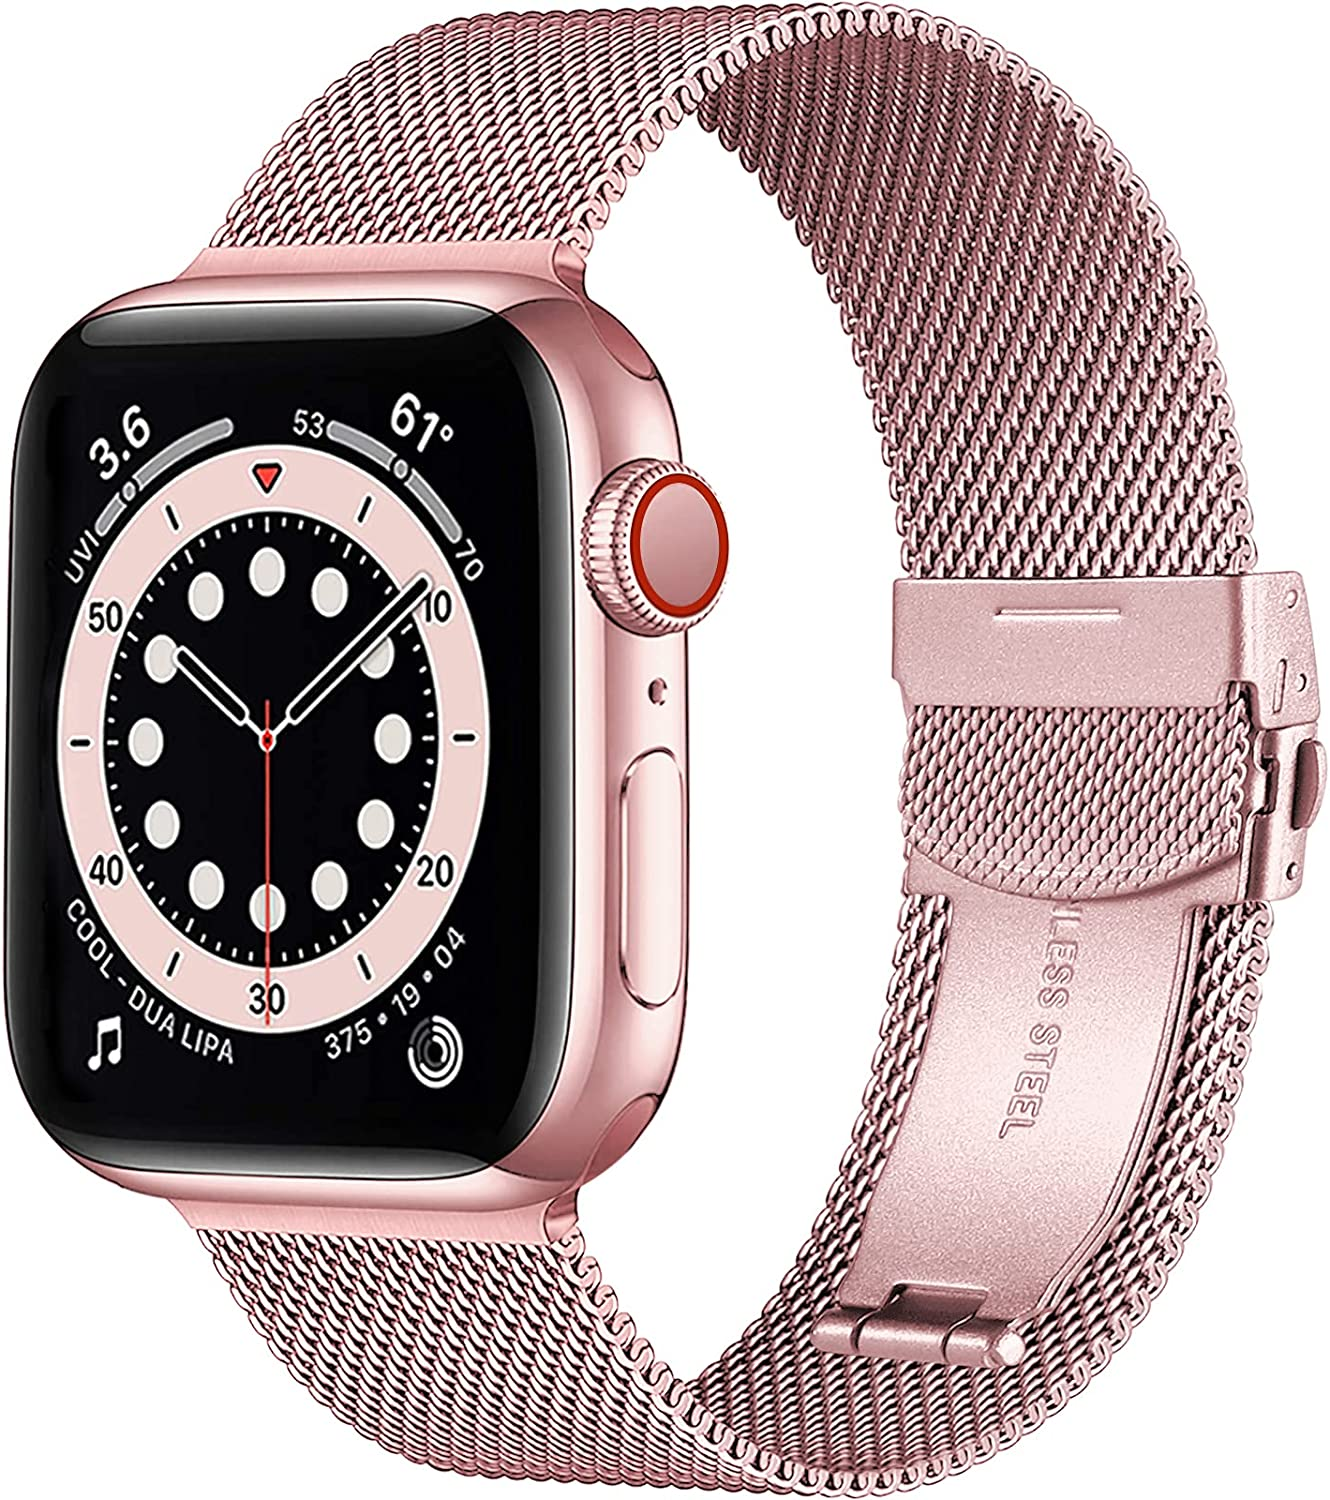 Muranne Compatible with Apple Watch Band 40mm 38mm for Women Men, Adjustable Stainless Steel Mesh Loop Sport Metal Wristband Compatible with iWatch SE Series 6 5 4 3 2 1, 38mm/40mm Rose Gold